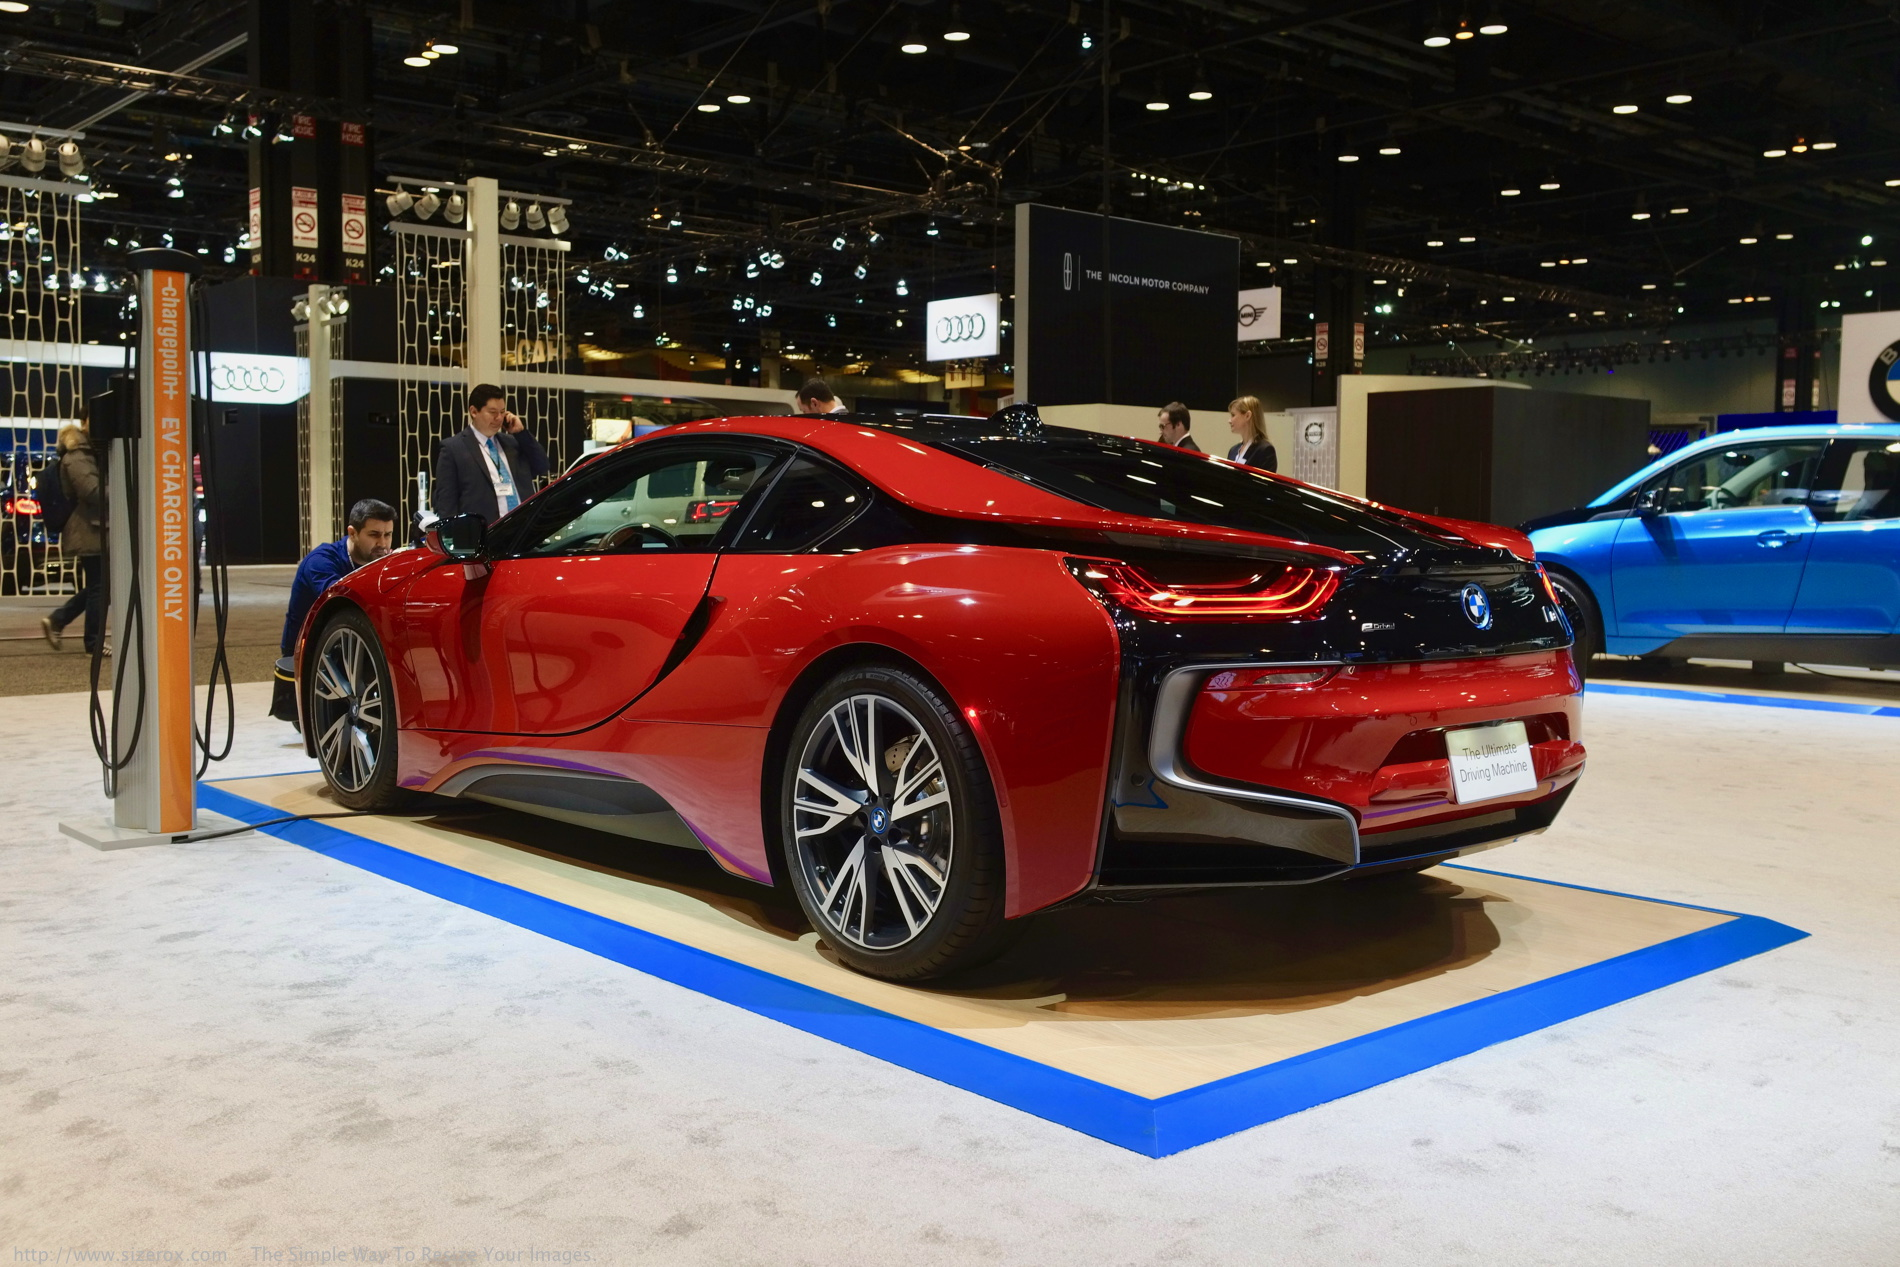 2017 chicago auto show the new bmw i8 protonic red. Black Bedroom Furniture Sets. Home Design Ideas